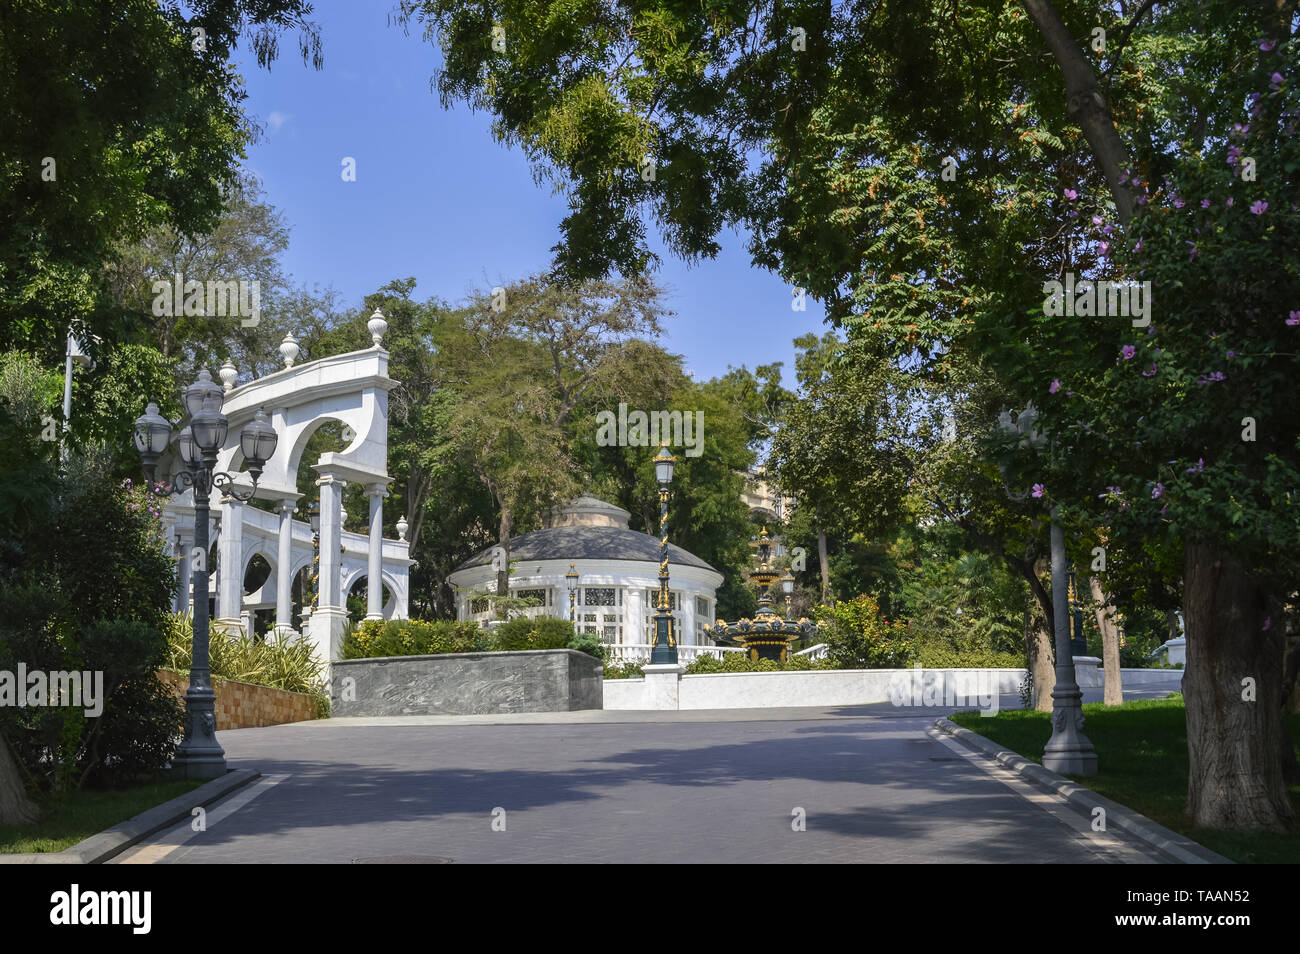 road entrance to main part of Philharmonic Fountain Park in Baku on sunny day - Stock Image